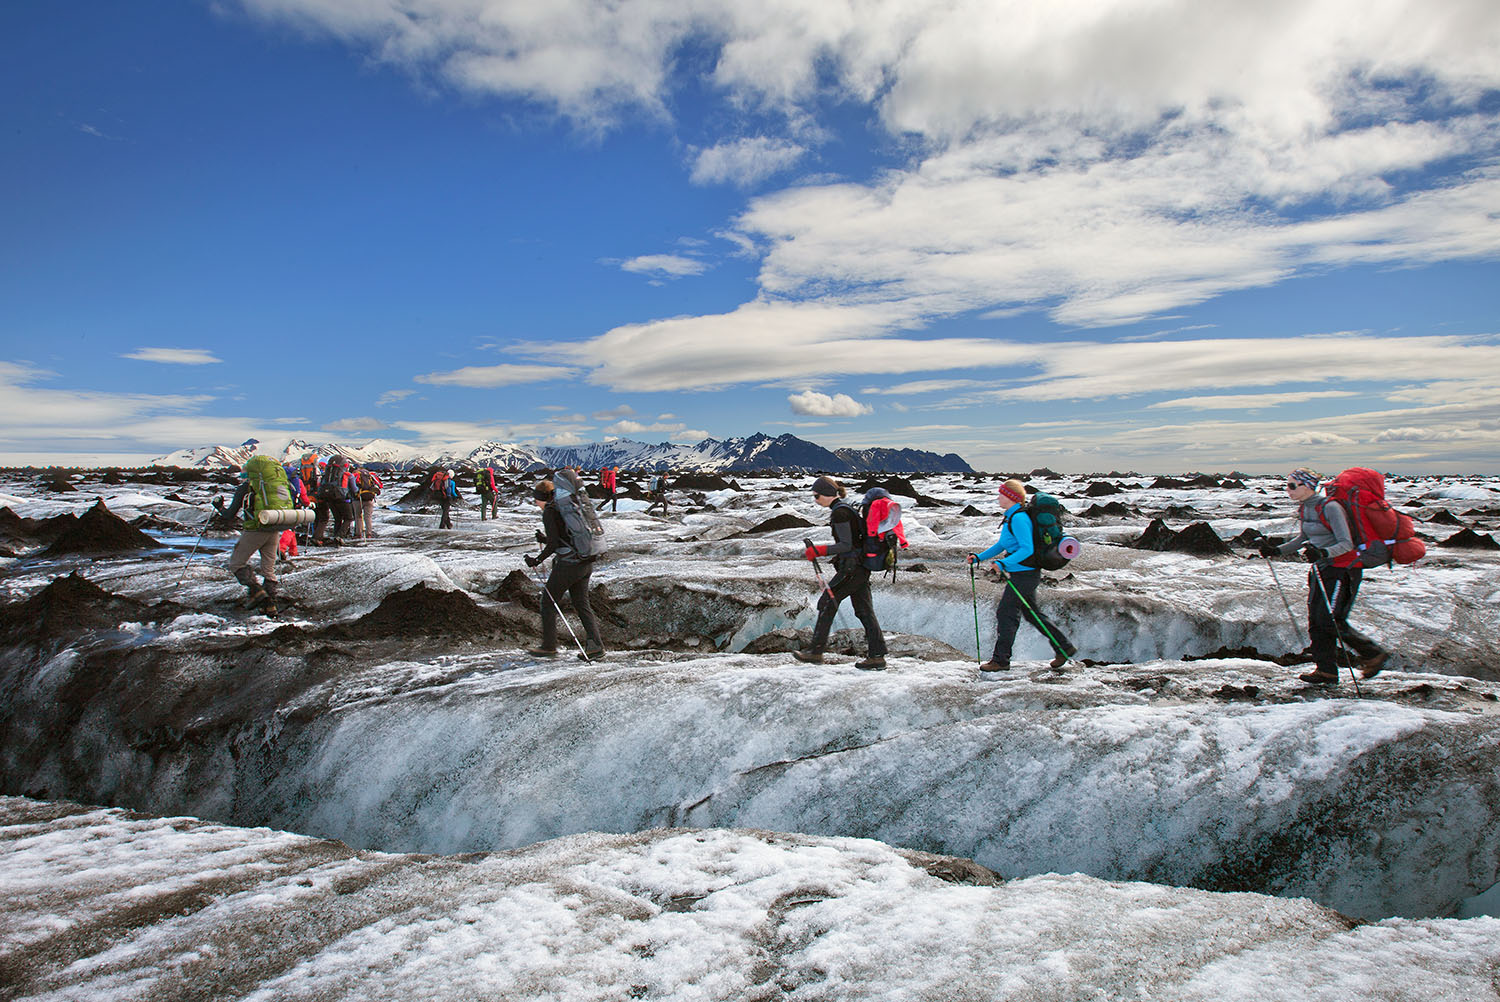 Hikers on the glacier